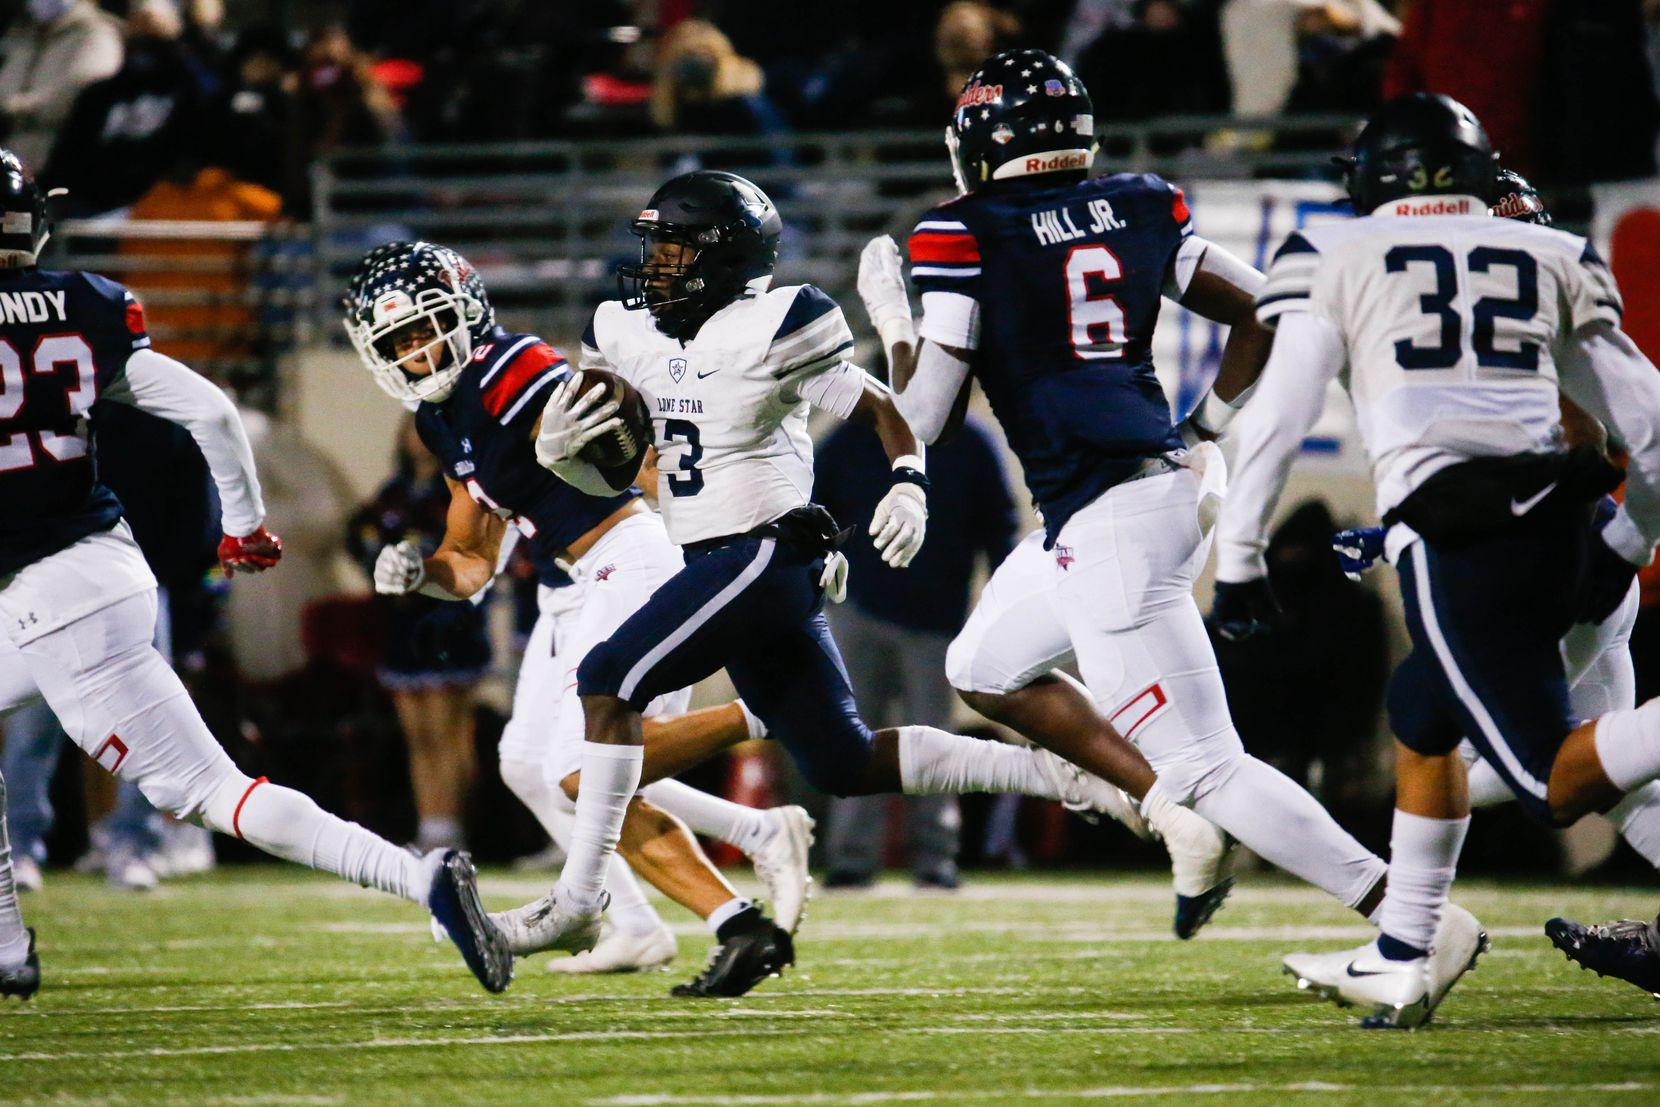 Frisco Lone Star's Tolu Sokoya (3) runs the ball during the first half of a football game against Denton Ryan at the C.H. Collins Complex in Denton on Thursday, Dec. 4, 2020. The game is tied at halftime, 14-14. (Juan Figueroa/ The Dallas Morning News)